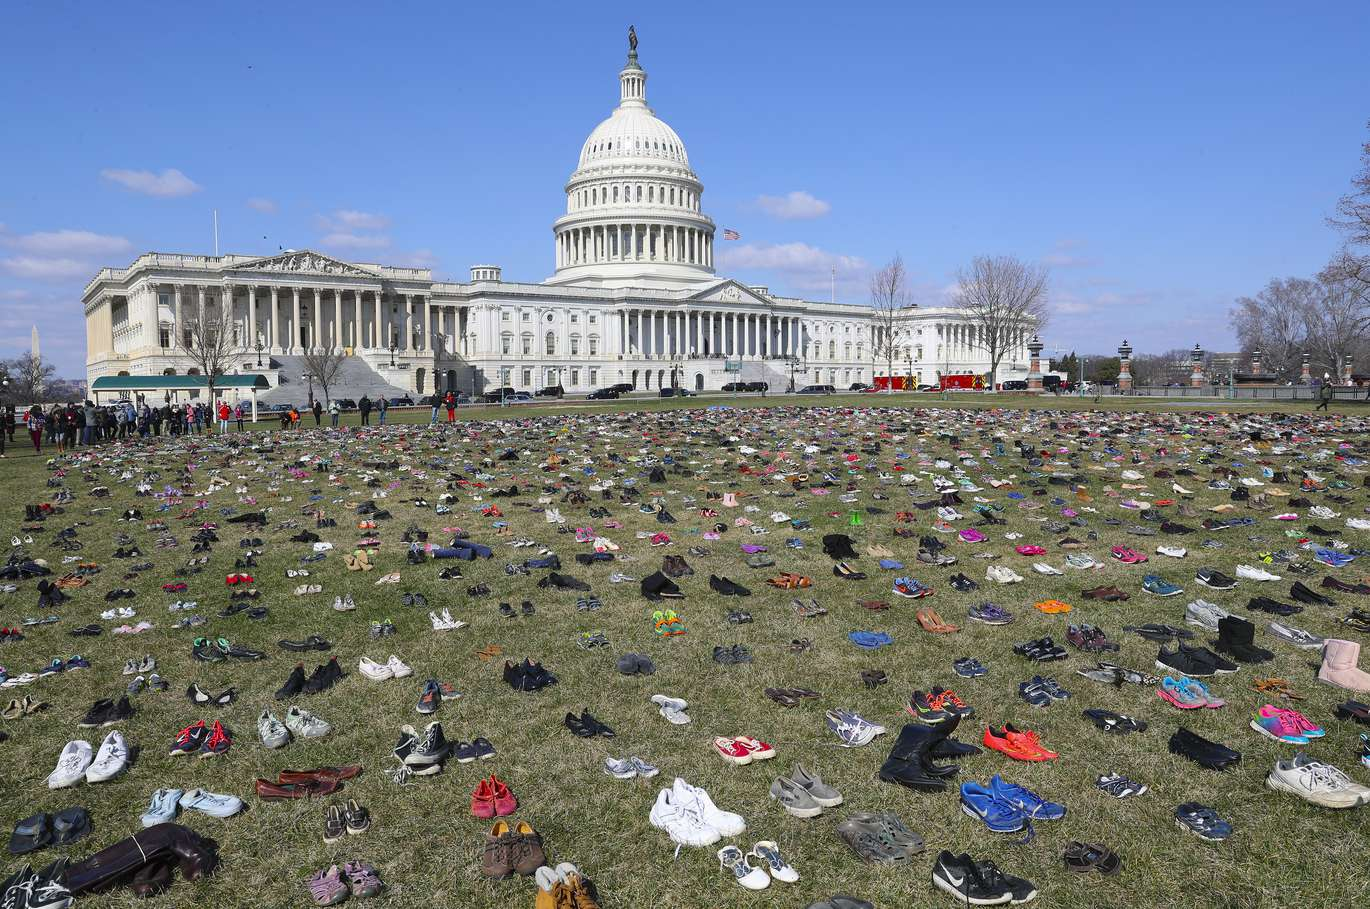 Some 7,000 pairs of shoes, one for every child killed by gun violence since the Sandy Hook school shooting, were placed on the Capitol lawn by Avaaz, ...